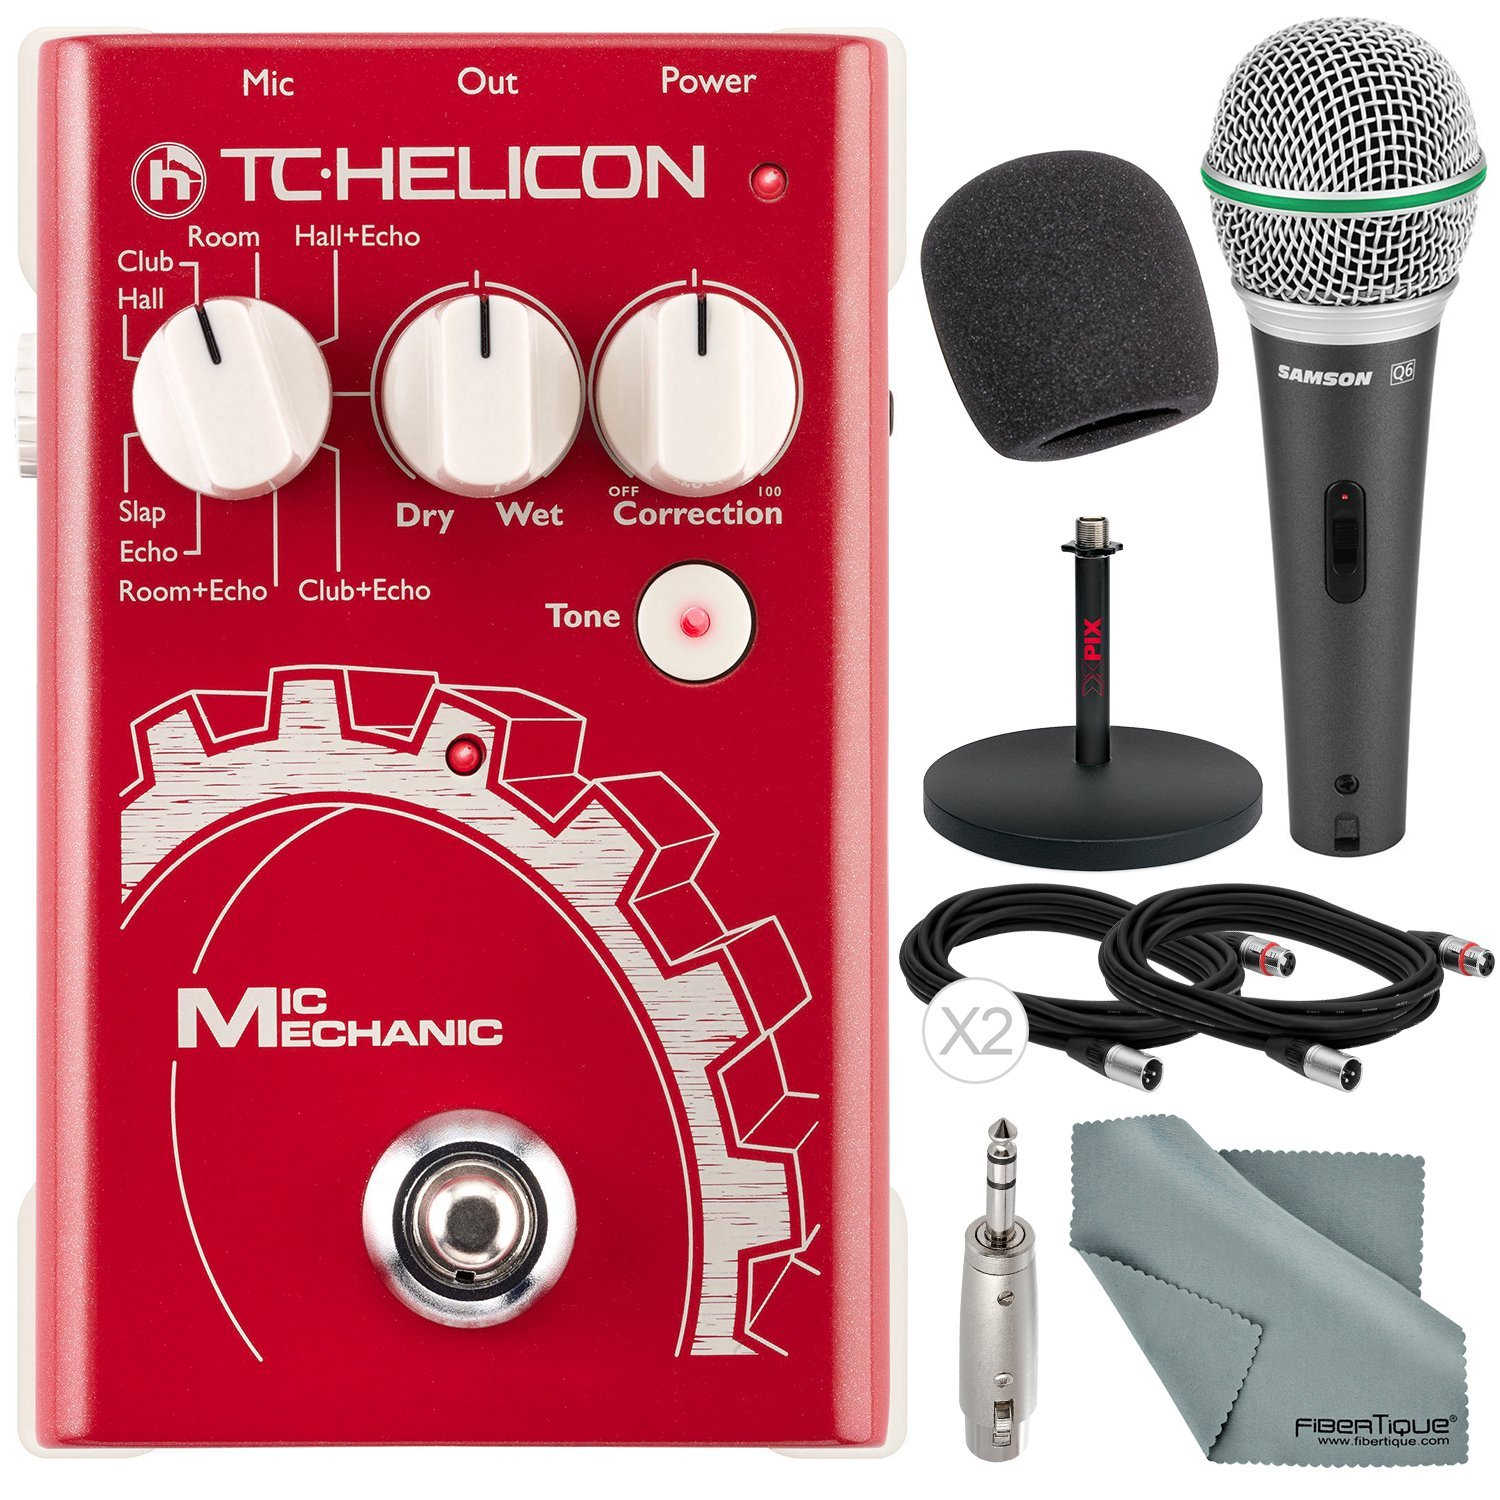 TC-Helicon Mic Mechanic Vocal Effects Toolbox Floor Pedal and Deluxe Bundle w/ Q6 Microphone + Xpix Mic Stand + Adapter + Cable + Fibertique Cloth + More